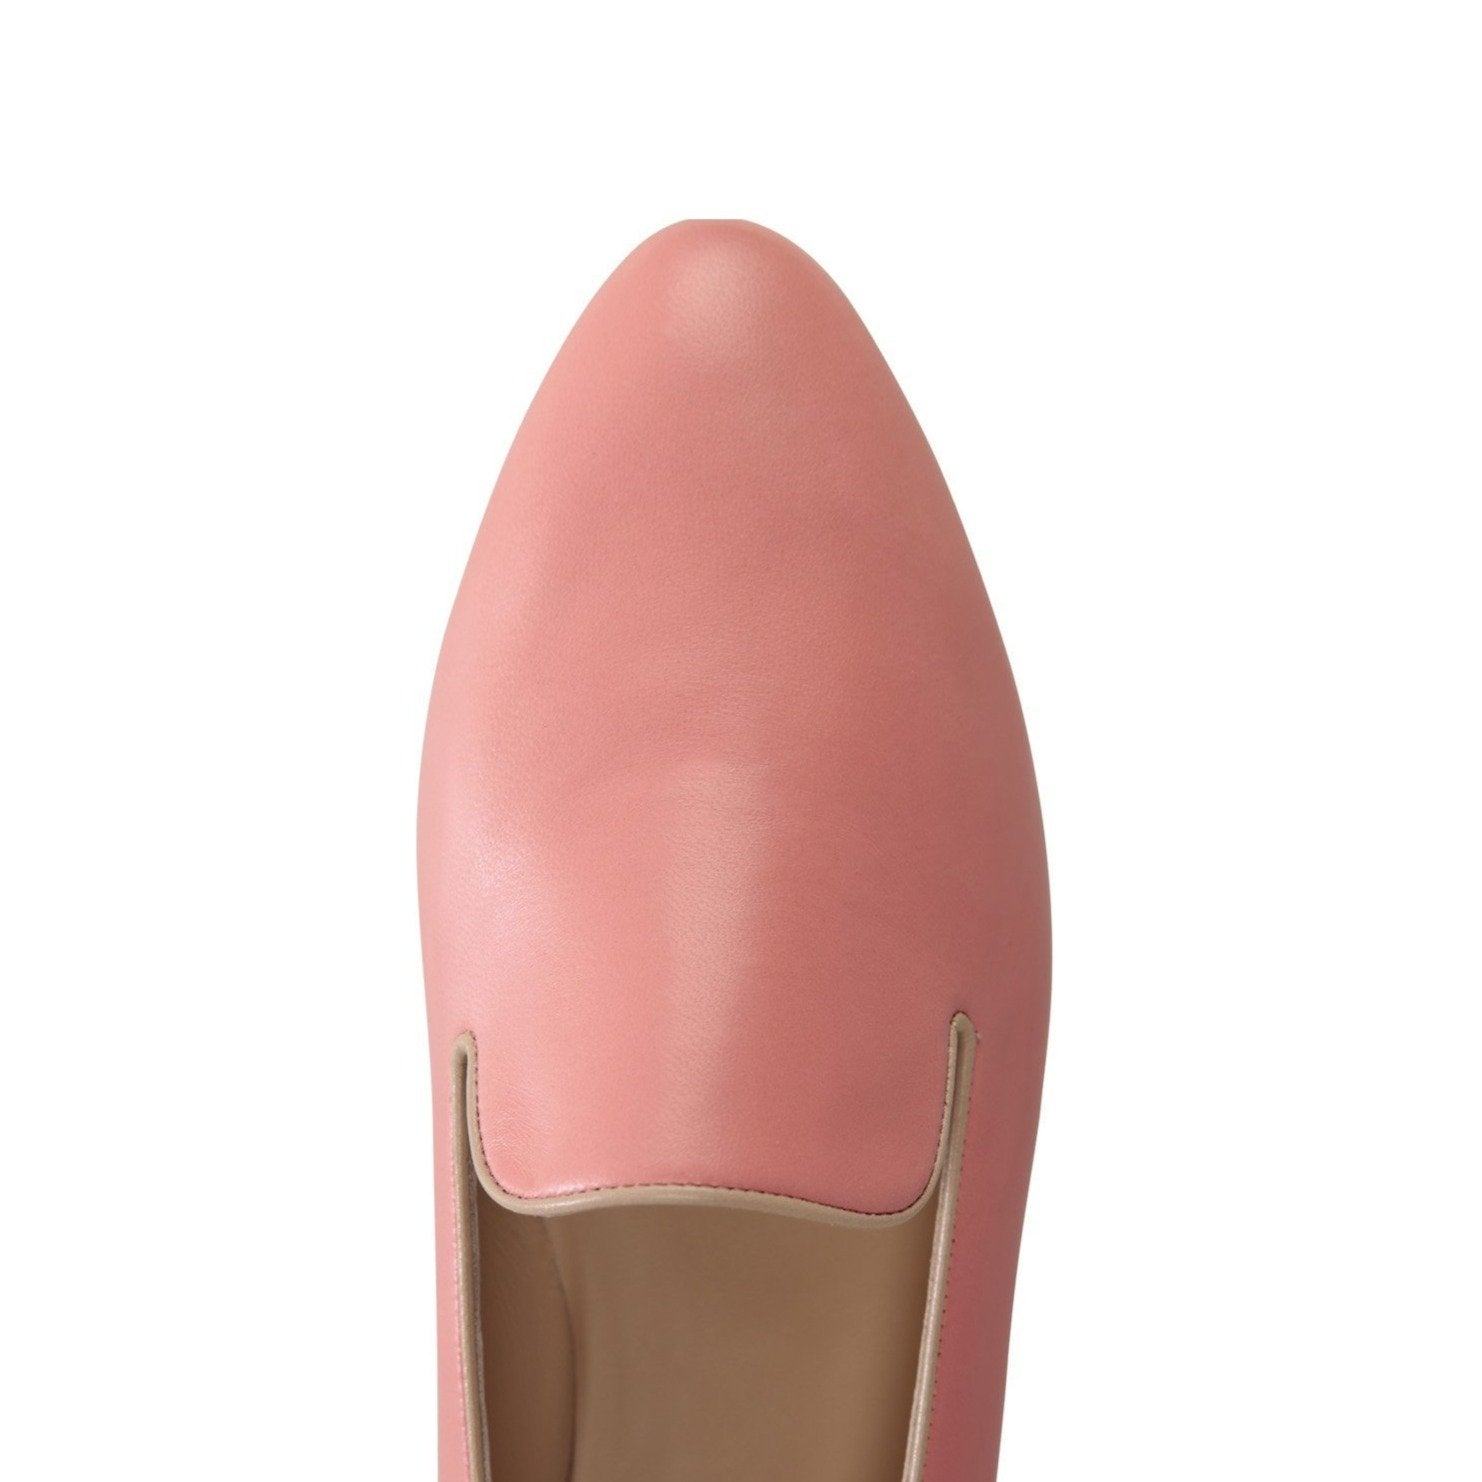 RAVENNA - Nappa Peach + Nude Trim, VIAJIYU - Women's Hand Made Sustainable Luxury Shoes. Made in Italy. Made to Order.